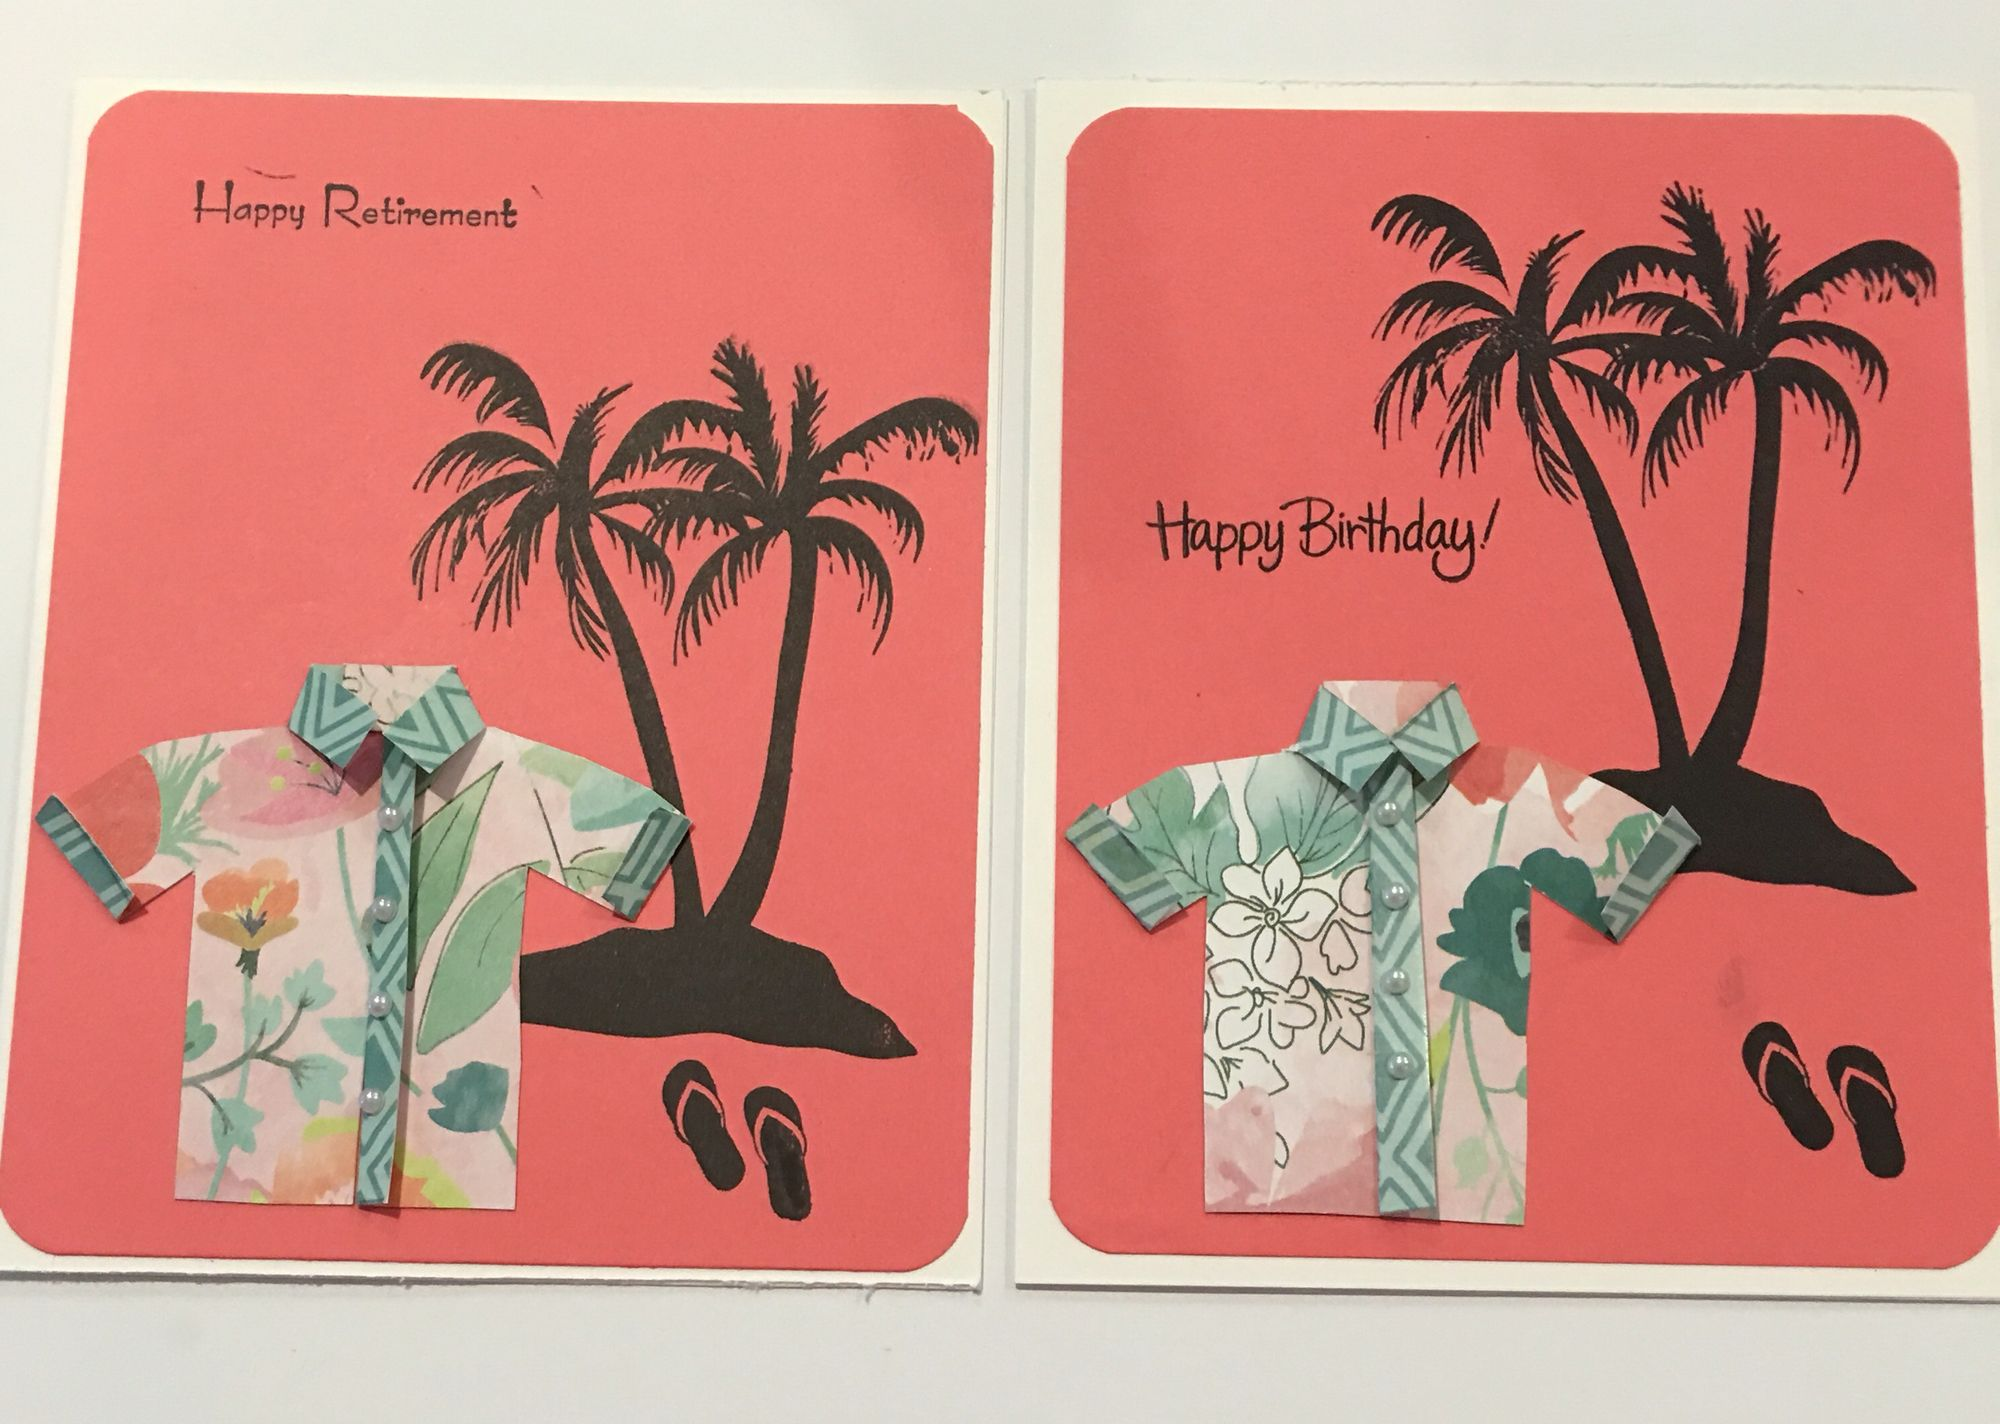 Cby happy birthday and happy retirement greeting cards with palm cby happy birthday and happy retirement greeting cards with palm tree flip flops and kristyandbryce Gallery